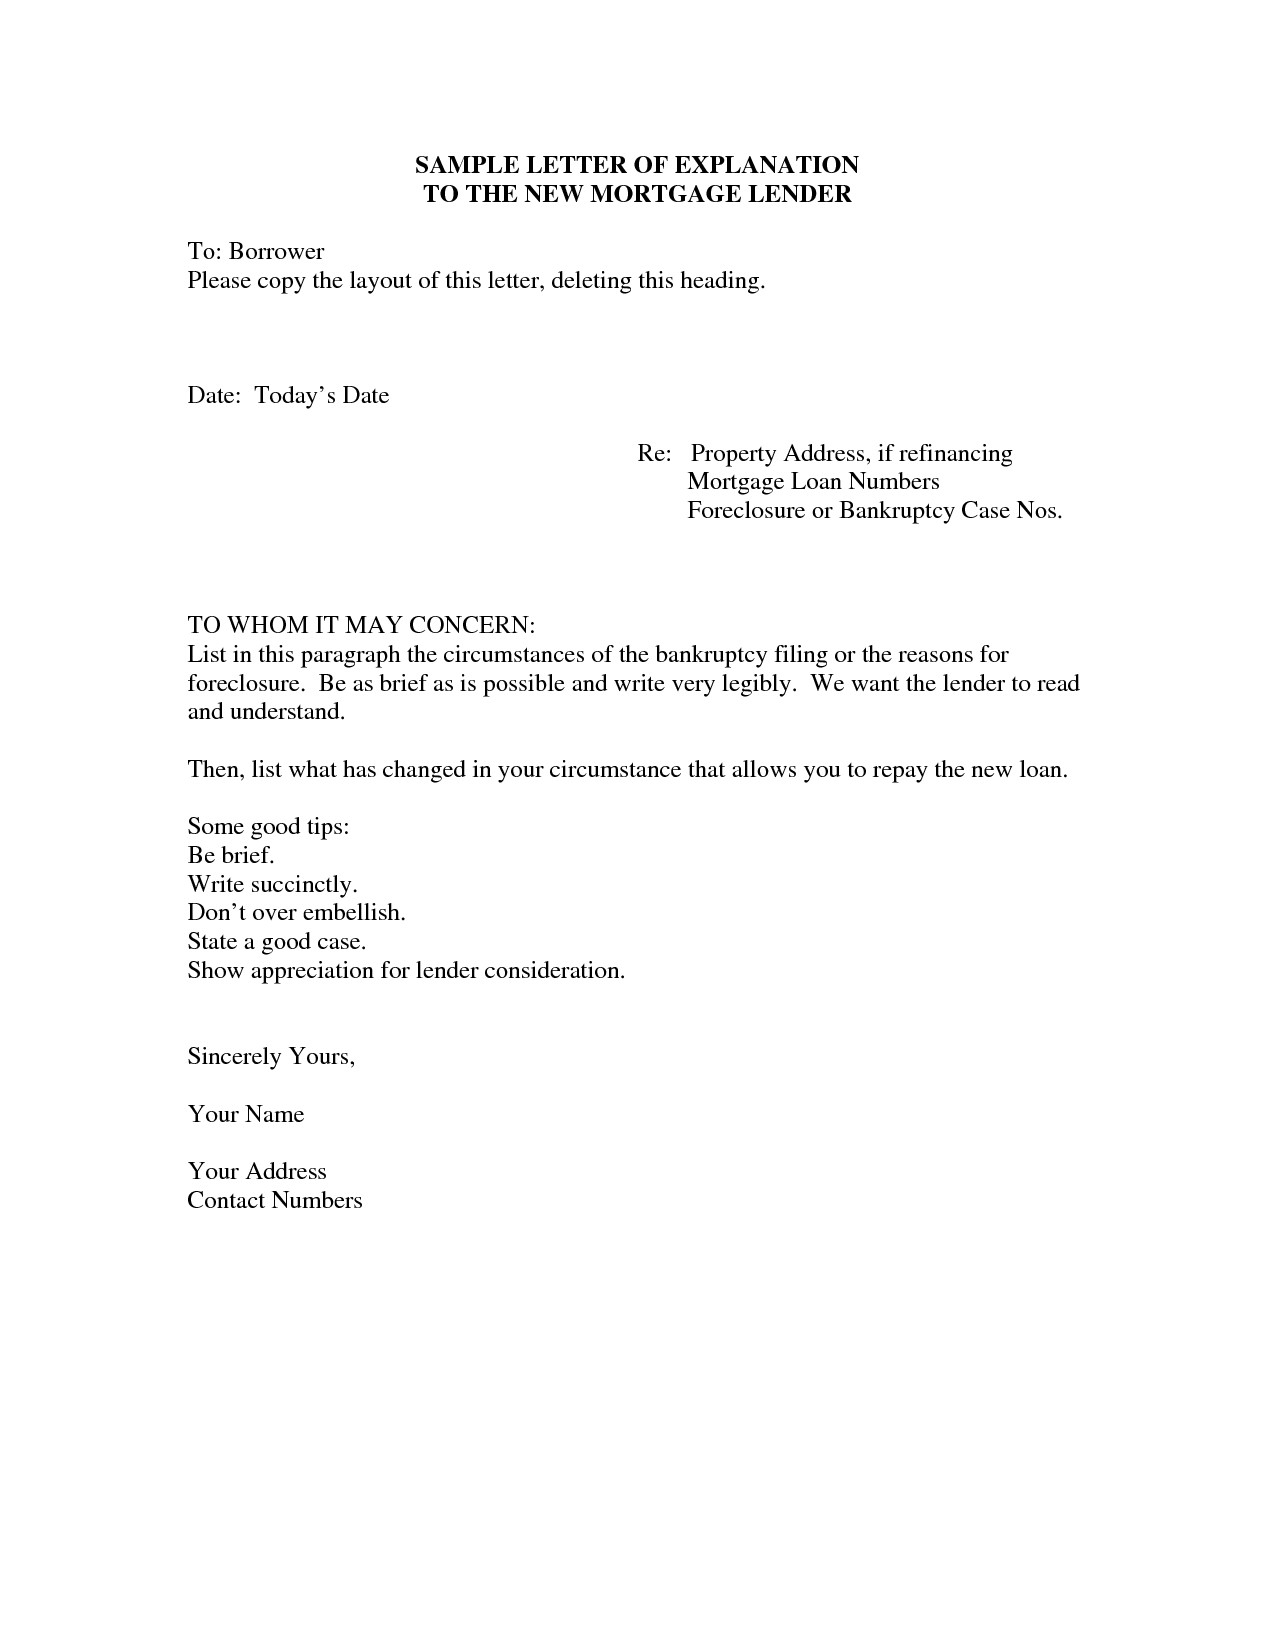 Mortgage Letter Of Explanation Template Collection | Letter Templates